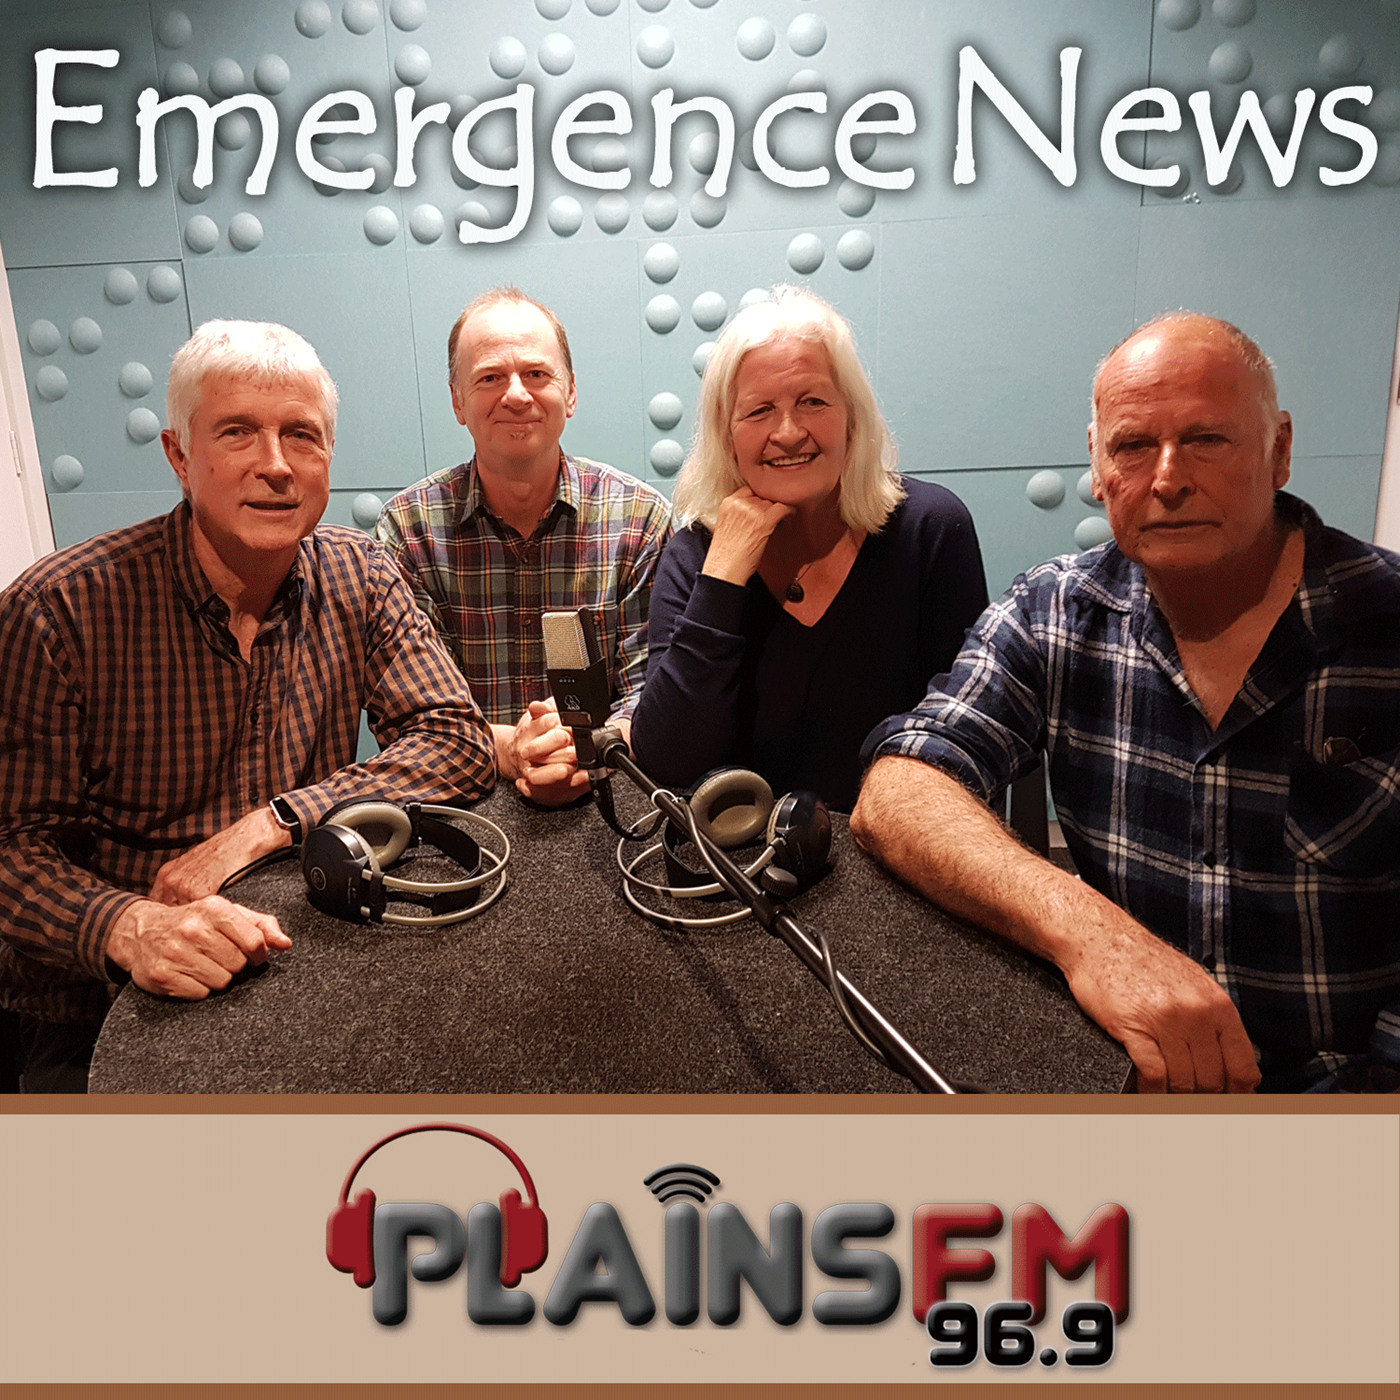 https://cdn.accessradio.org/StationFolder/plainsfm/Images/EmergenceNews.png